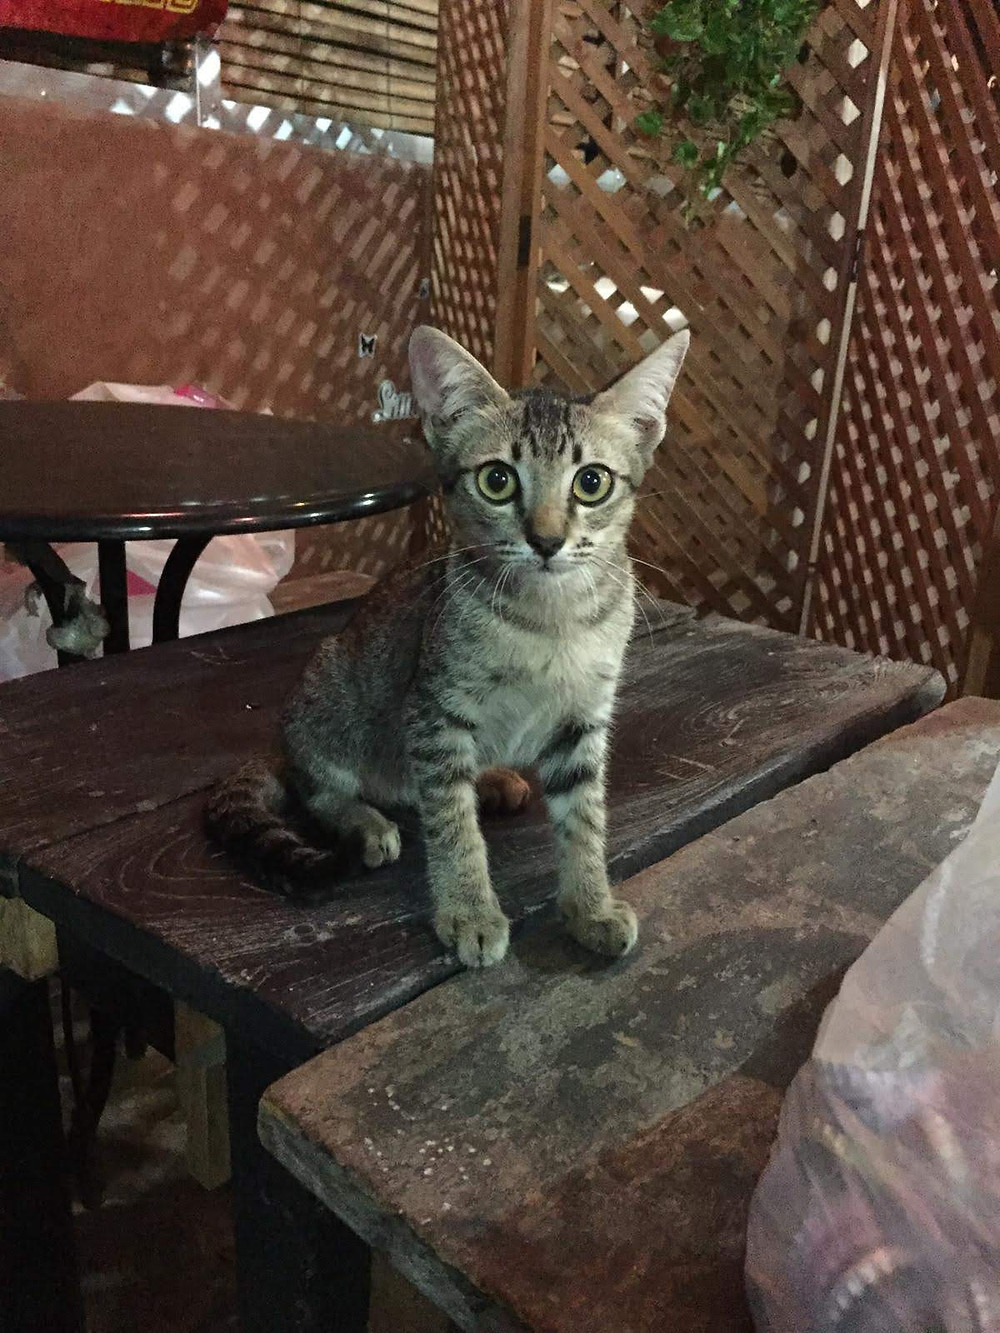 This cat would accompany me often when eating here